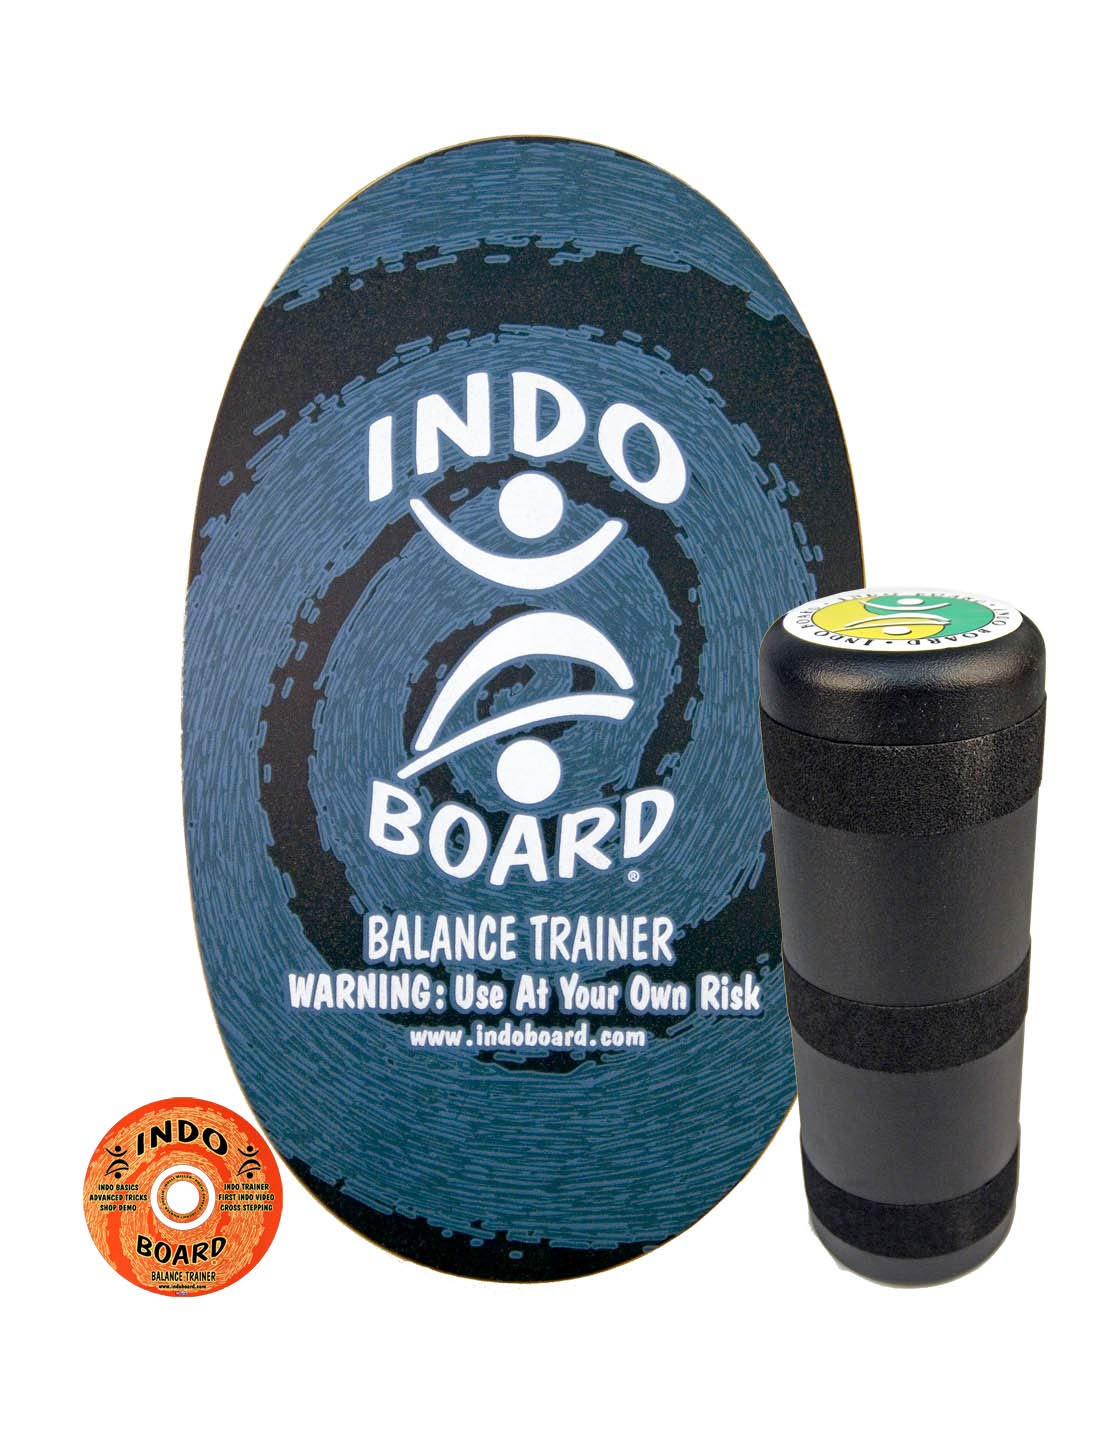 INDO BOARD Original Balance Board with 6.5'' Roller and 30'' X 18'' Non-Slip Deck - Blue Swirl Design by INDO BOARD (Image #1)